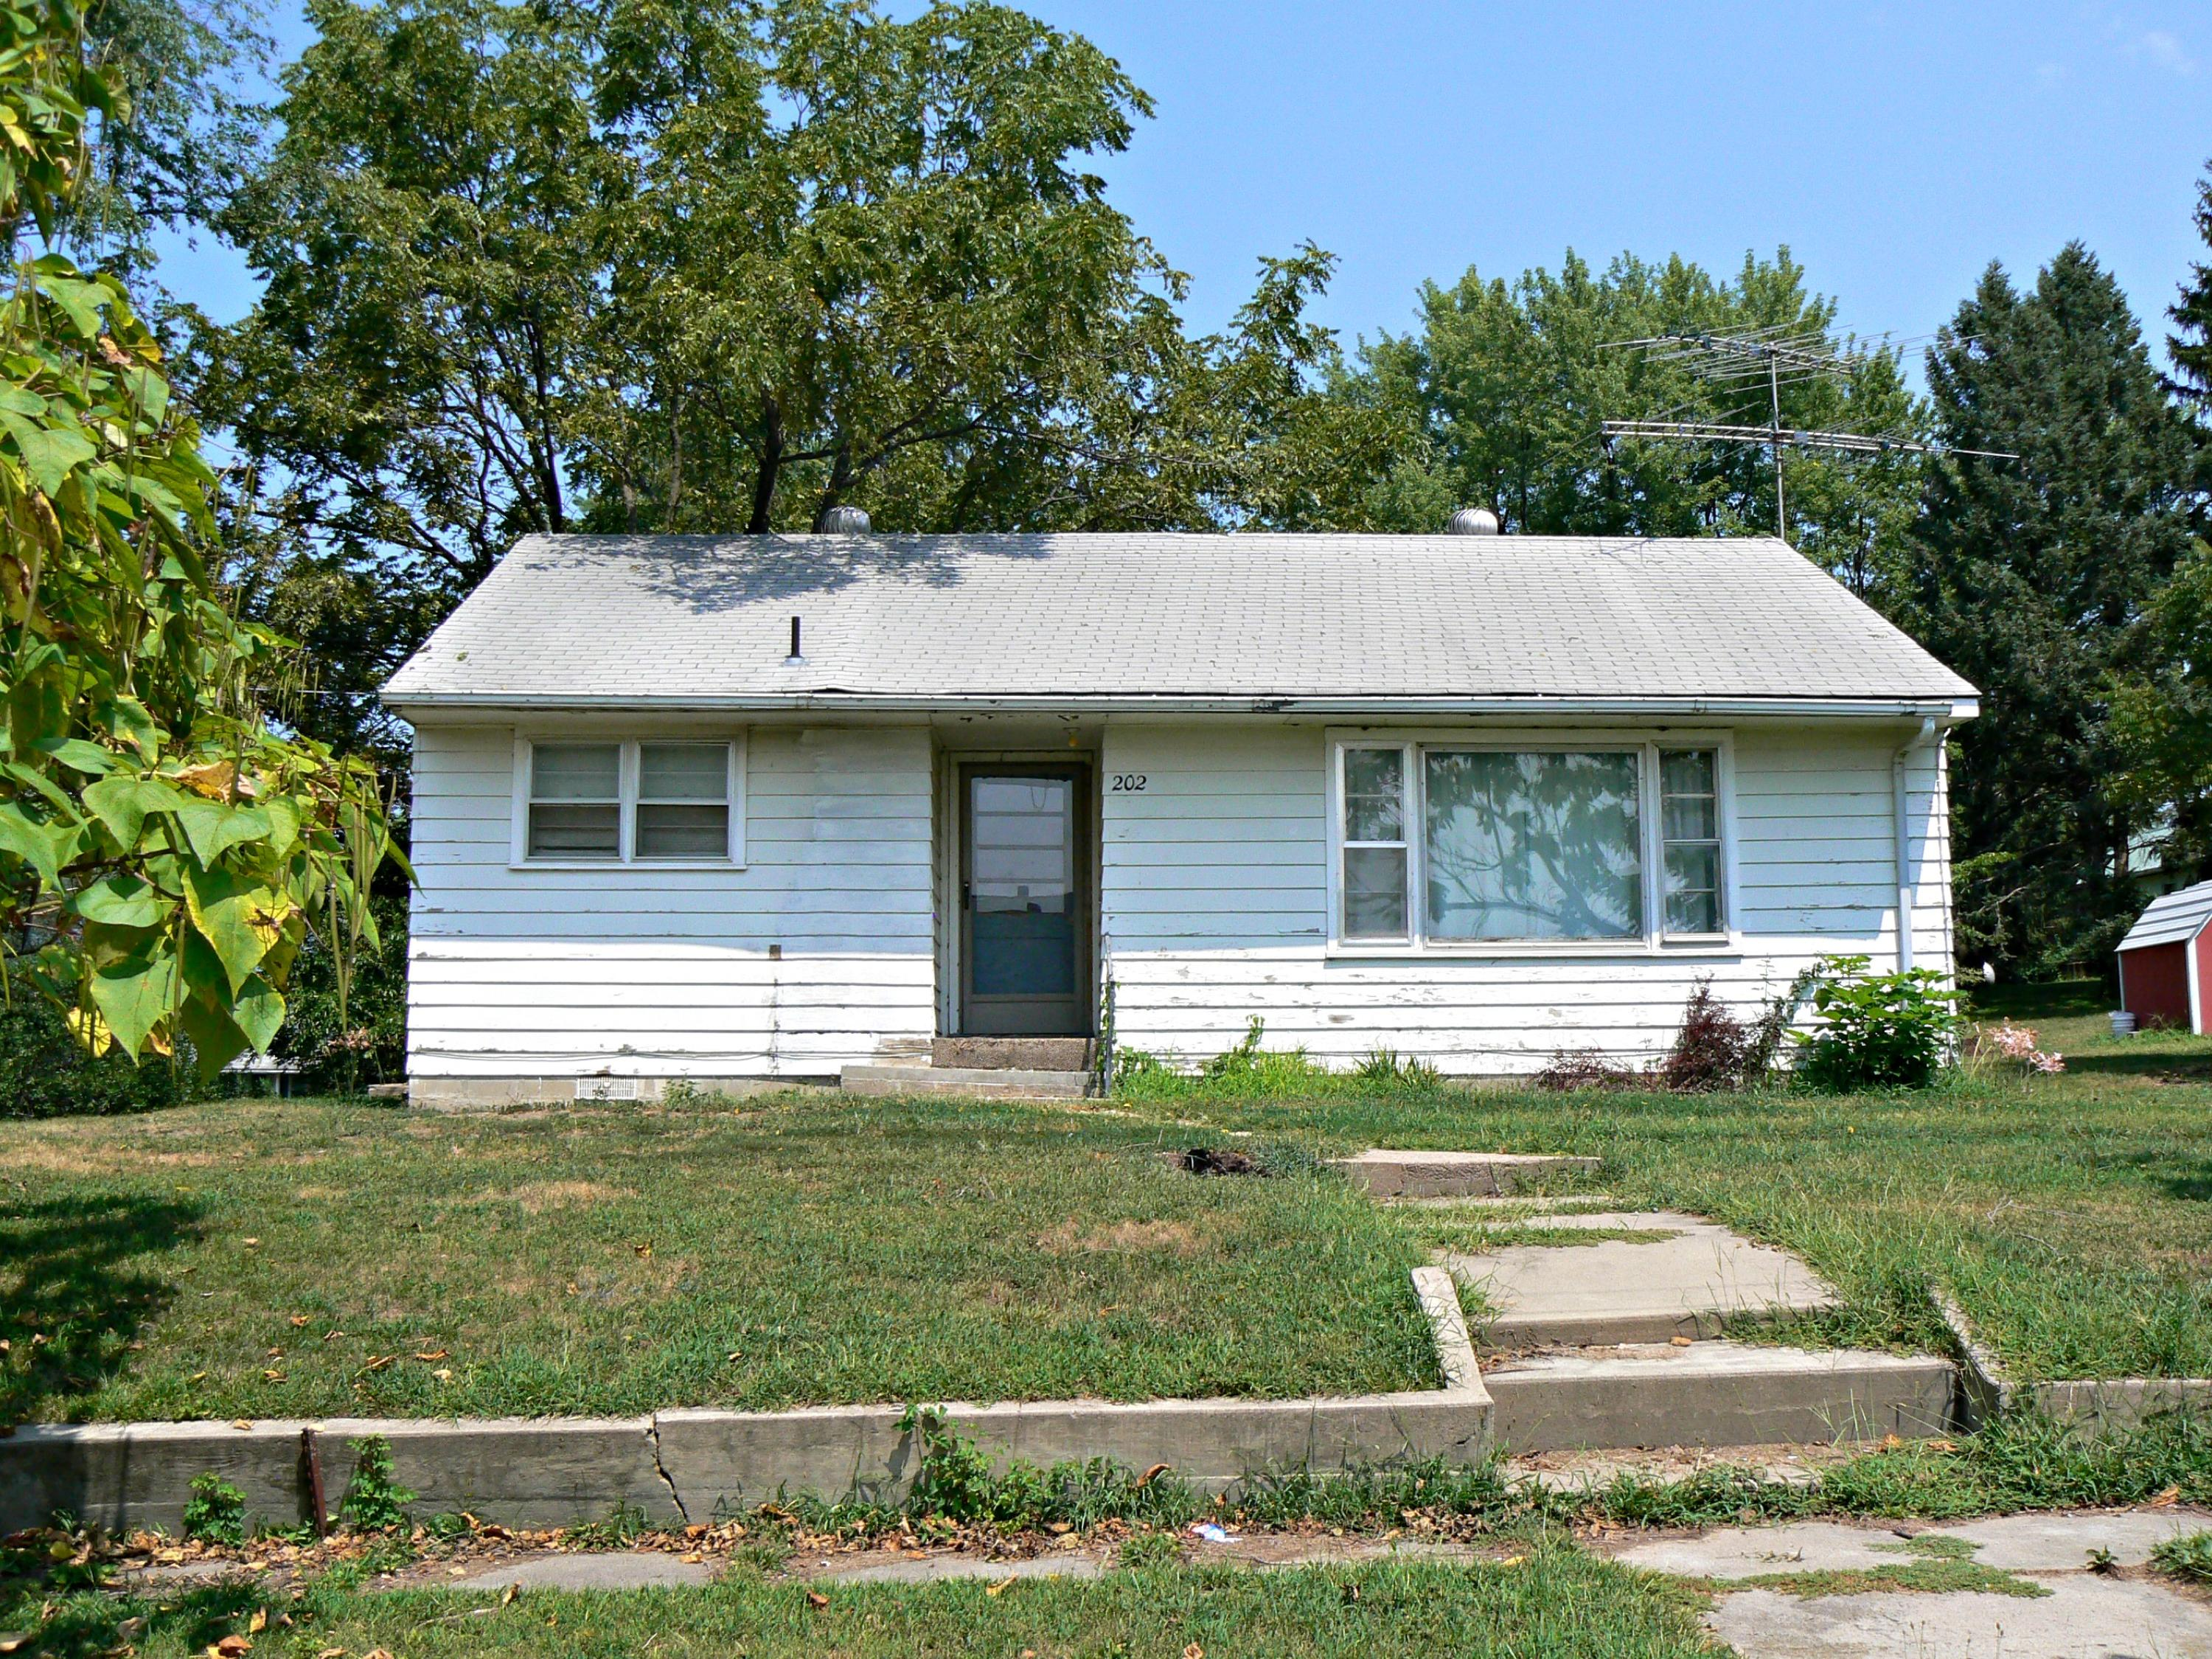 202 E 2ND ST, Quitman, Missouri 64487, 2 Bedrooms Bedrooms, ,1 BathroomBathrooms,Residential,2ND,4209